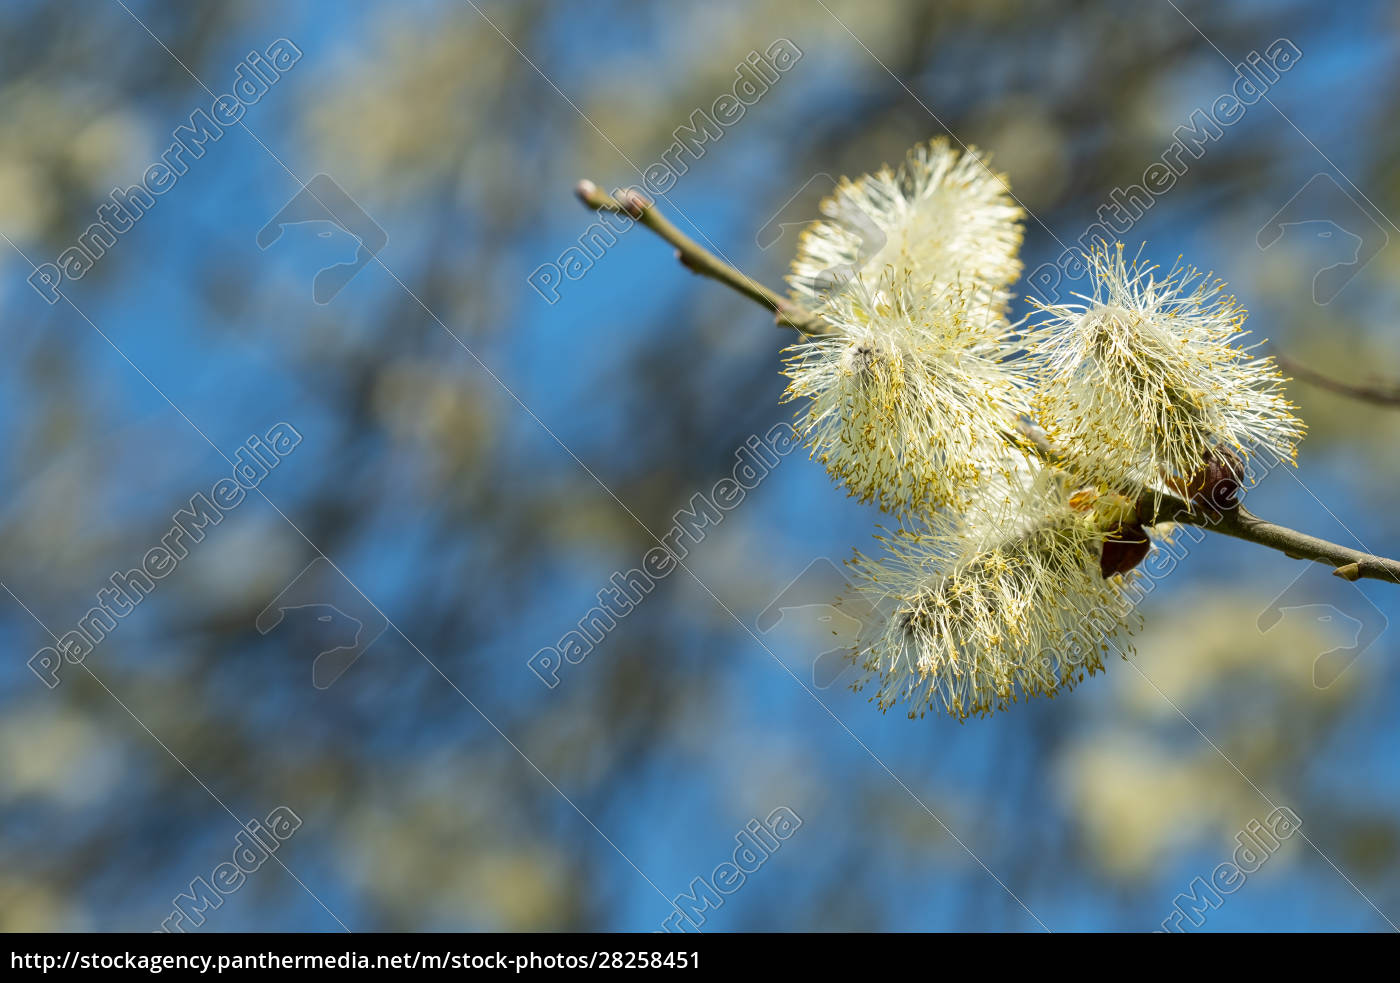 twig, of, a, willow, (salix), with - 28258451